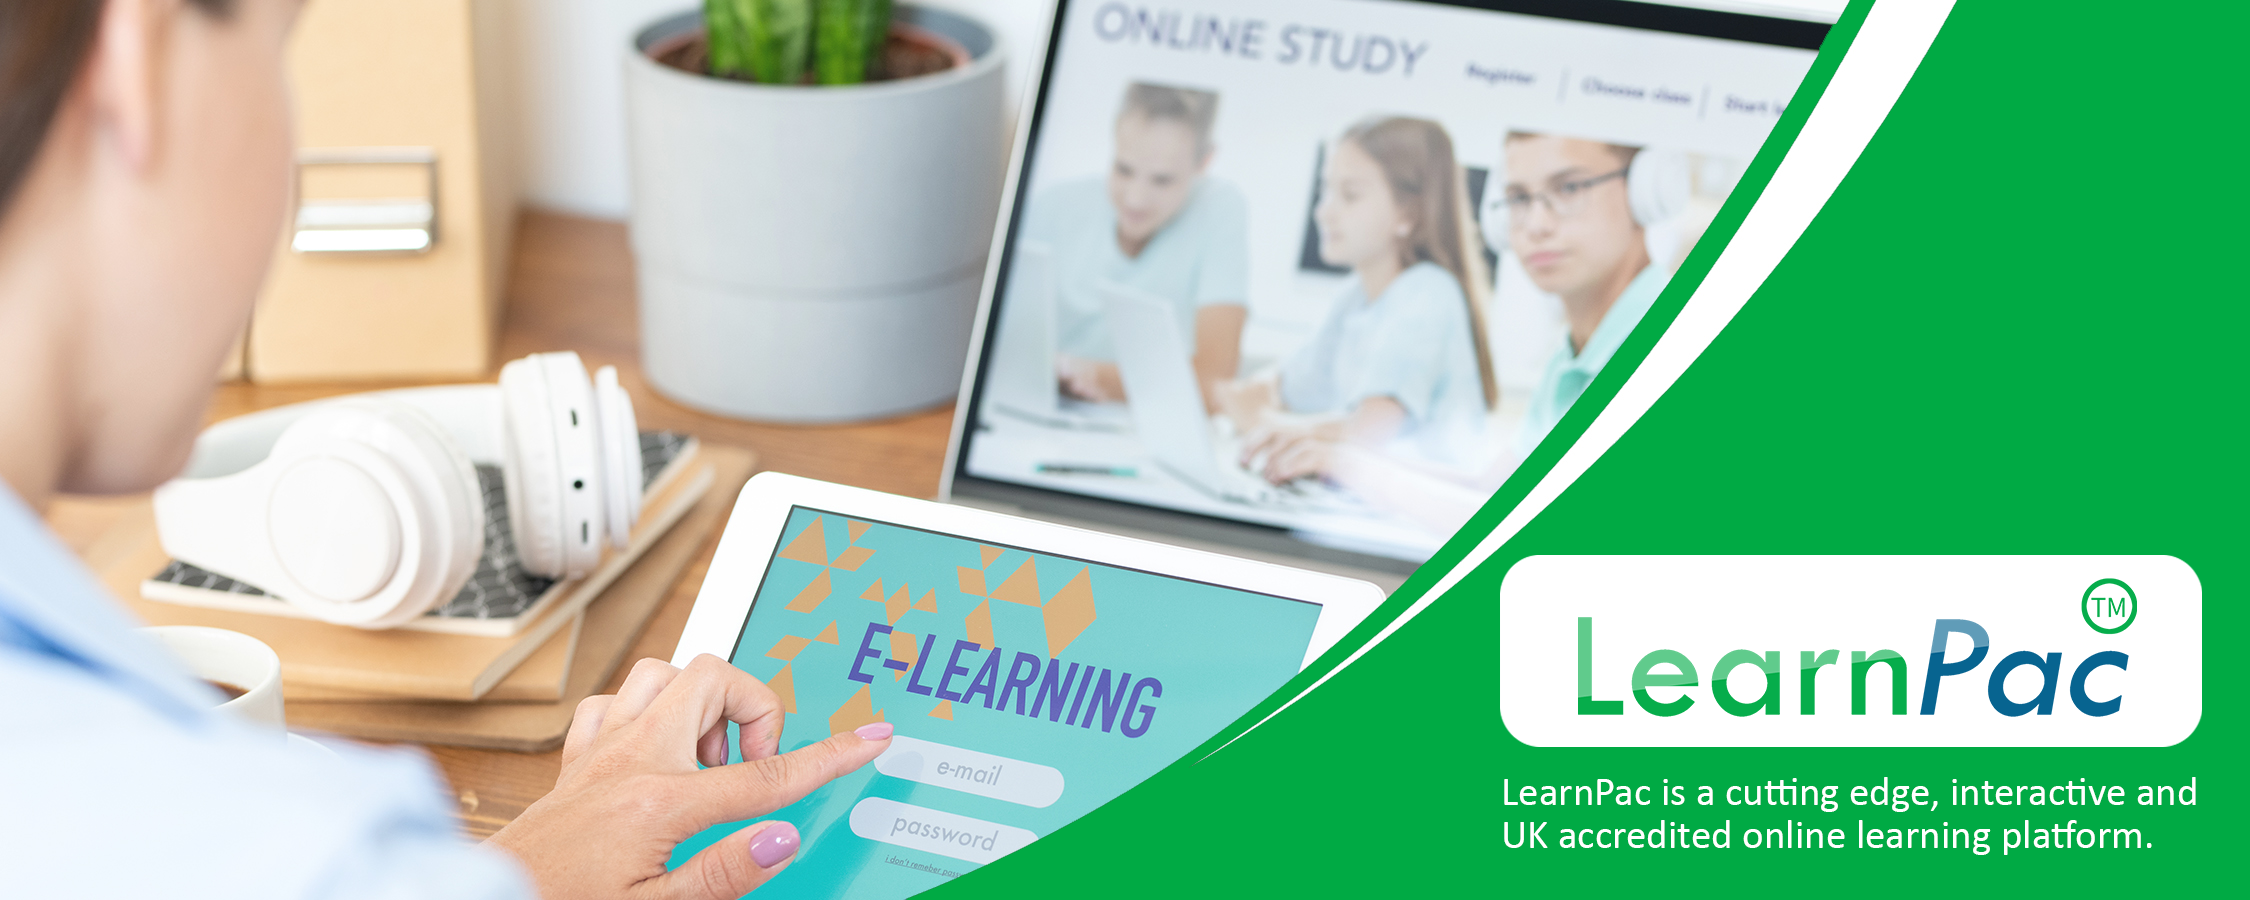 Maternity, Paternity and Adoption - Online Learning Courses - E-Learning Courses - LearnPac Systems UK -